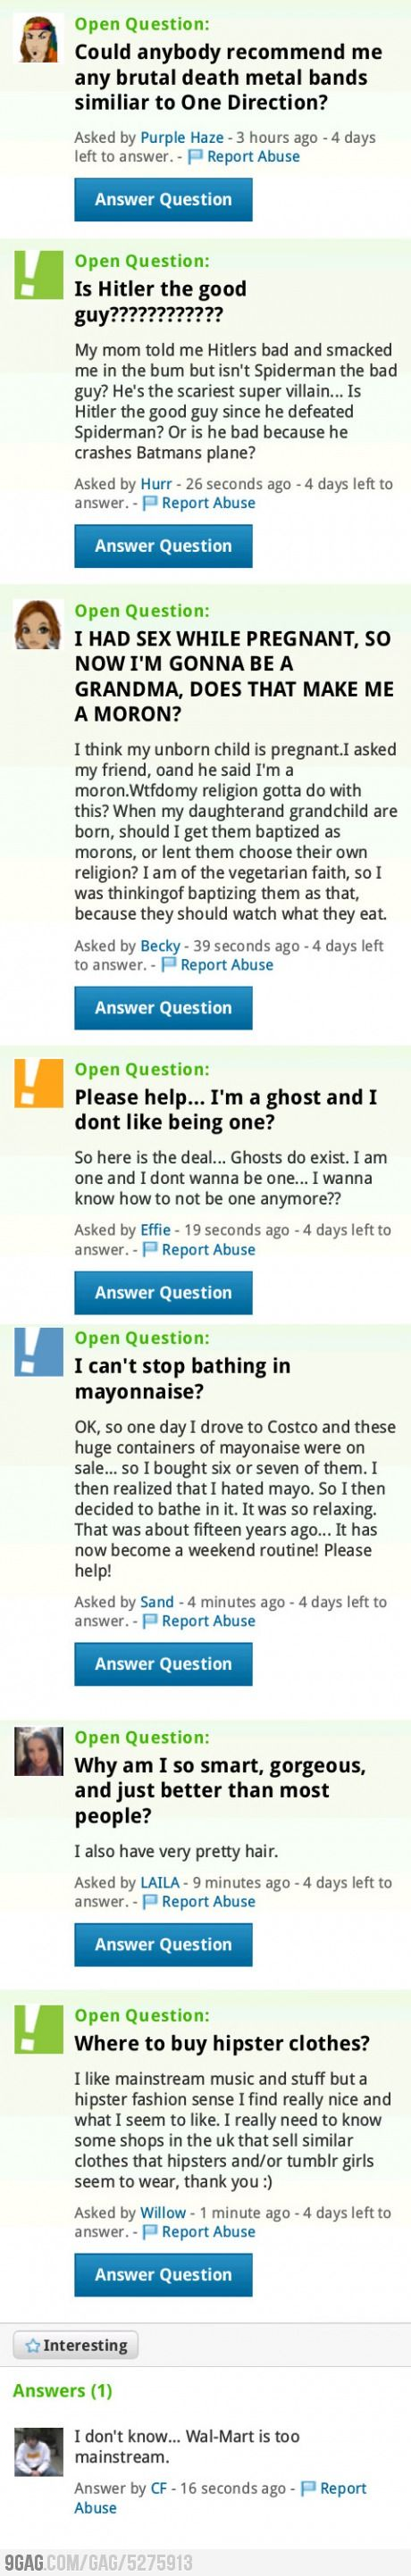 Meanwhile On Yahoo! Answeres